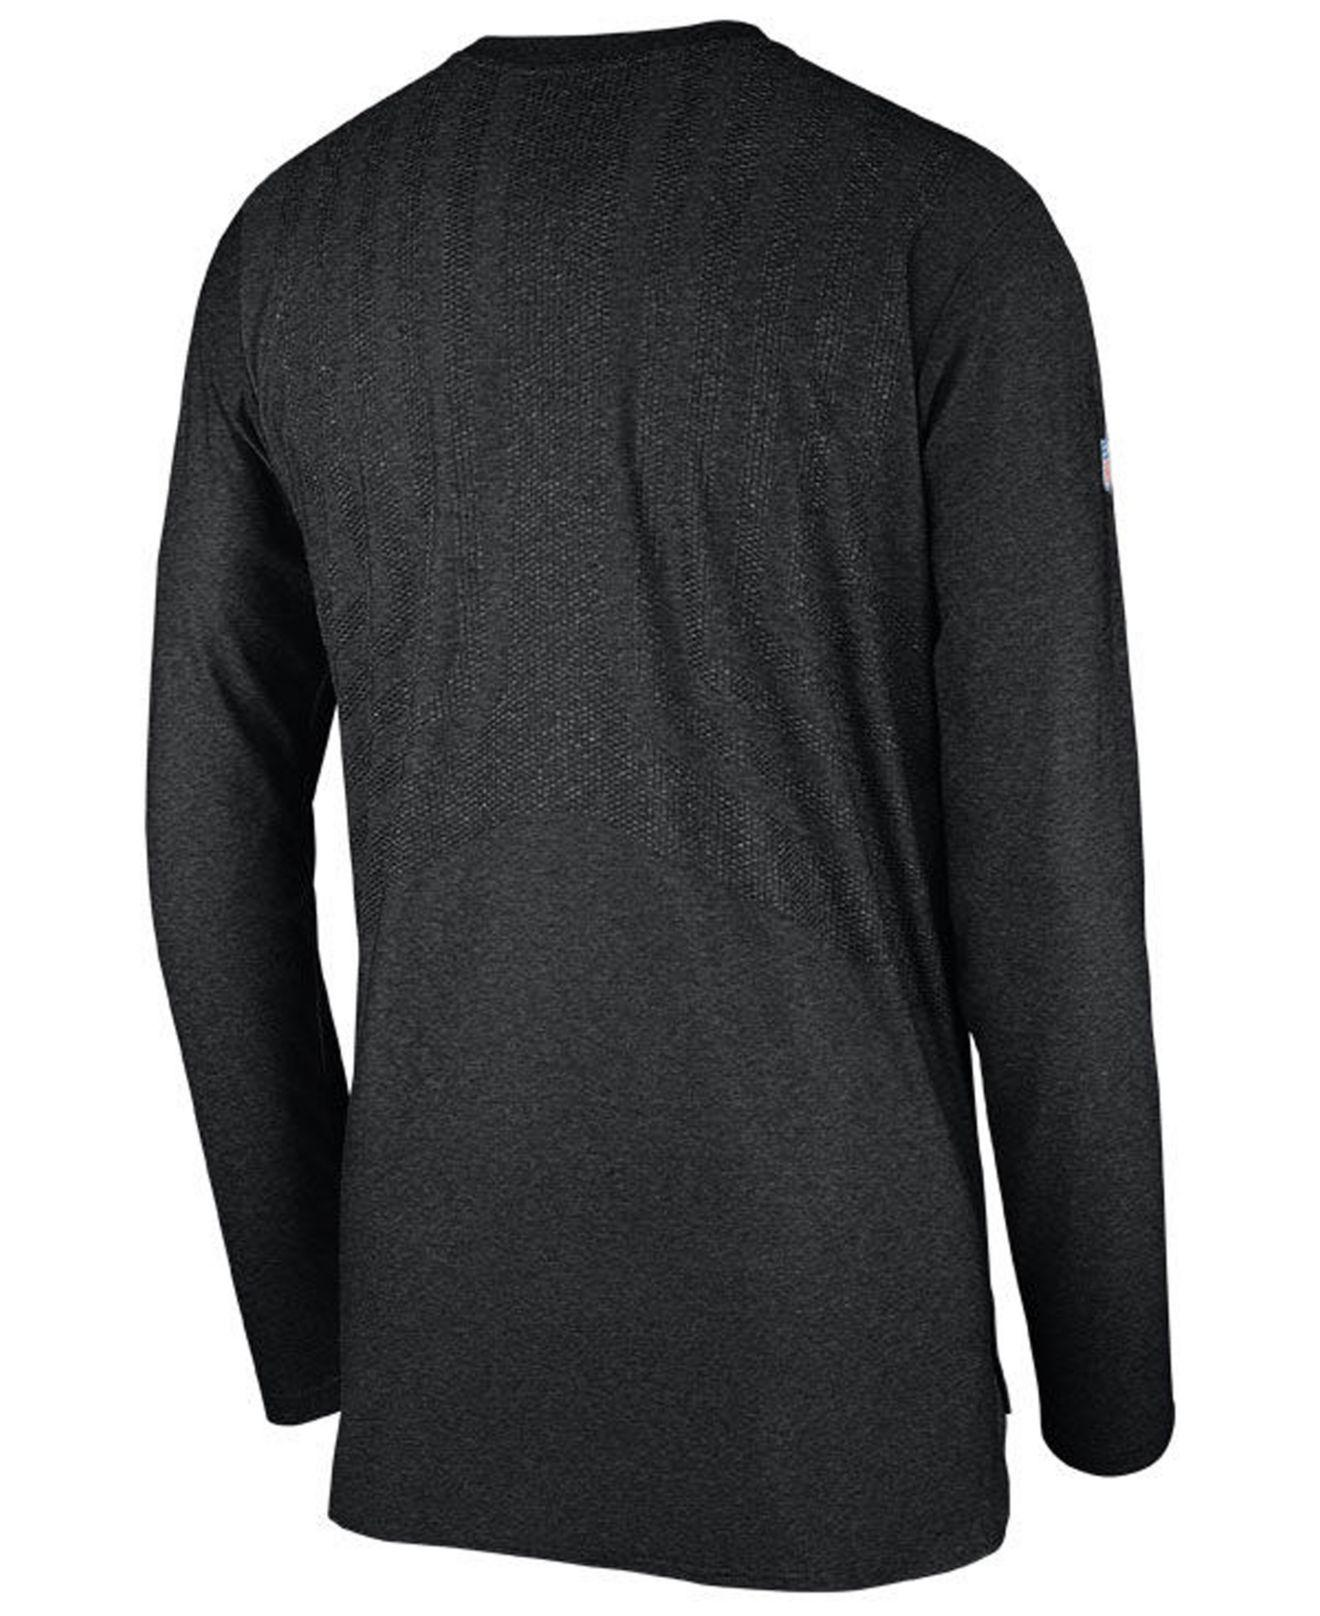 Lyst - Nike Dri-fit Player (nfl Raiders) Men s Long Sleeve Top in Black for  Men - Save 50% 526df52b3